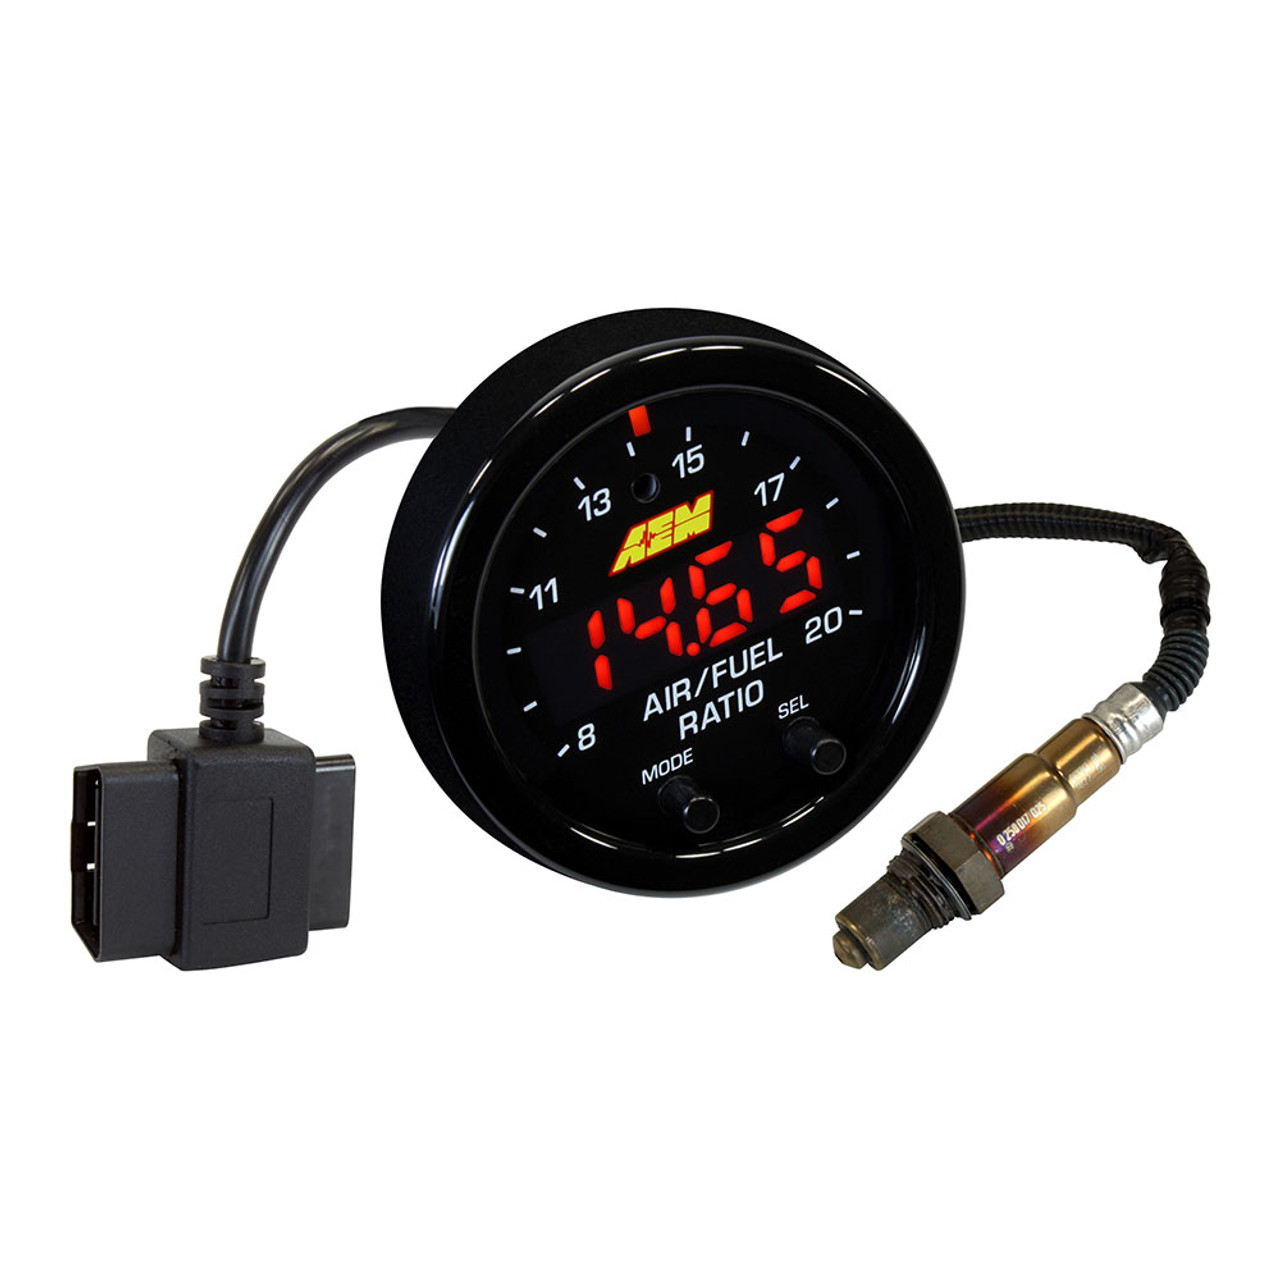 AEM (30-0334) X-SERIES OBDII WIDEBAND UEGO AFR GAUGE KIT, PLUG-N-PLAY!